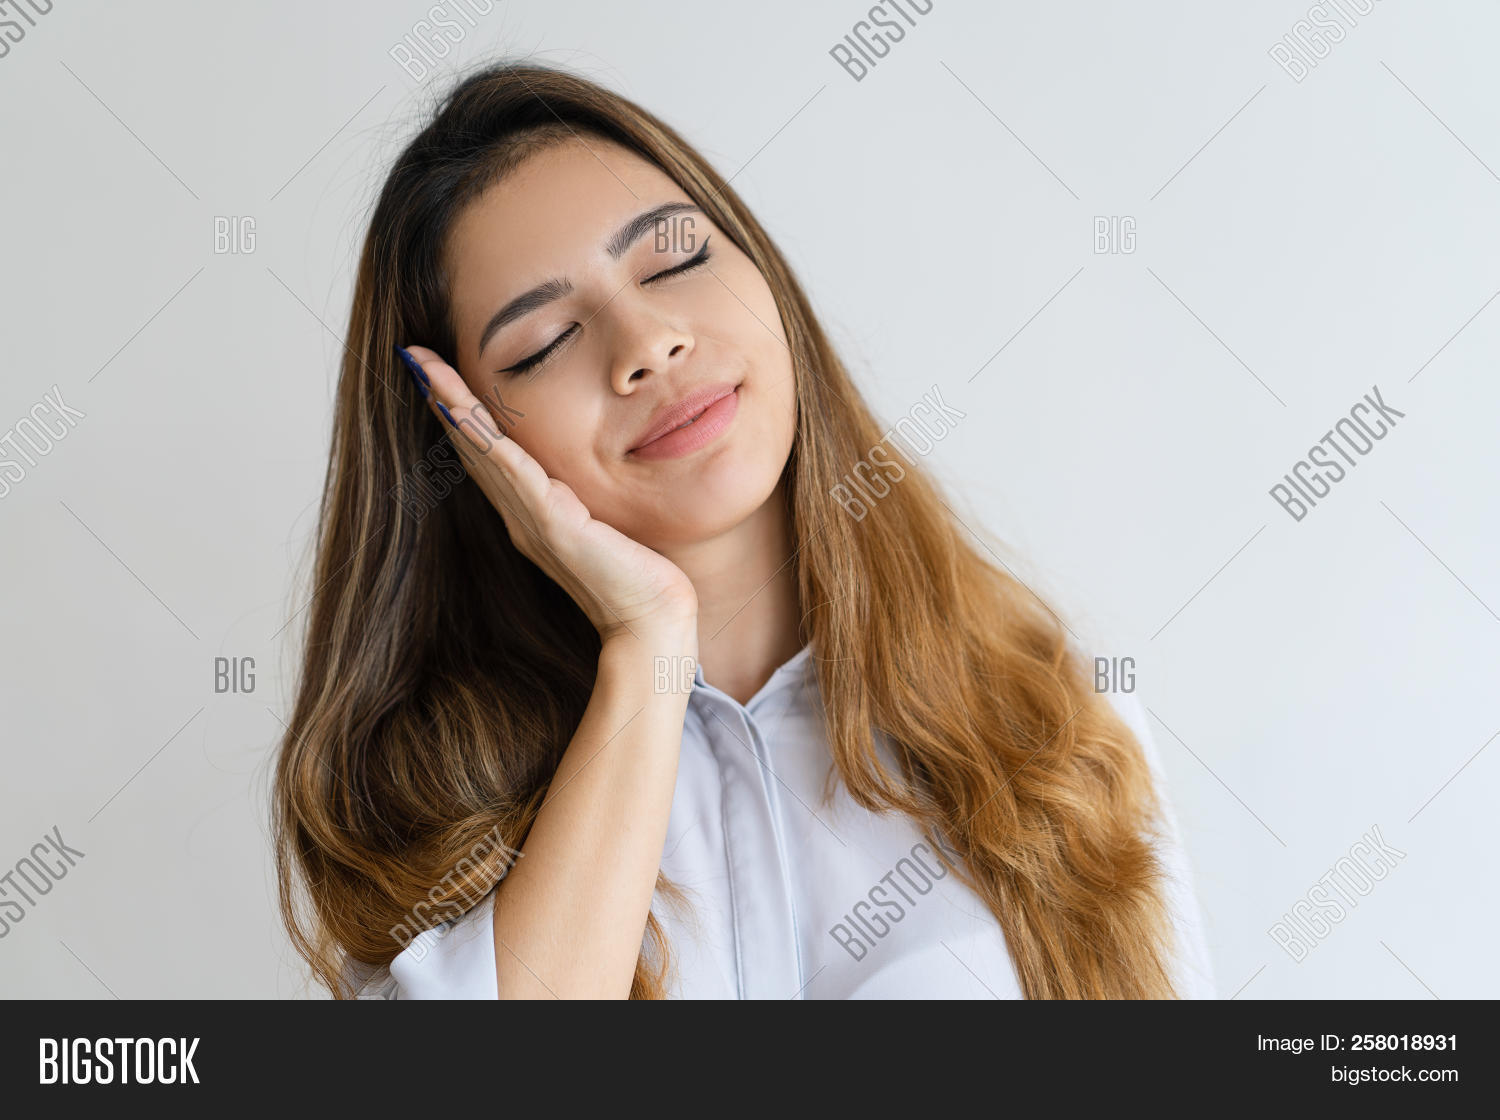 Asian,adult,attractive,beautiful,break,brown-haired,business,calm,closed,closeup,concept,content,customer,dream,eye,female,formal,front,gesture,girl,hand,isolated,lady,leaning,lovely,making,mixed,one,overwork,peaceful,person,portrait,pretty,race,relaxation,relaxing,rest,serene,serious,shirt,sleep,sleeping,sleepy,smiling,studio,tired,twenty,woman,worker,young